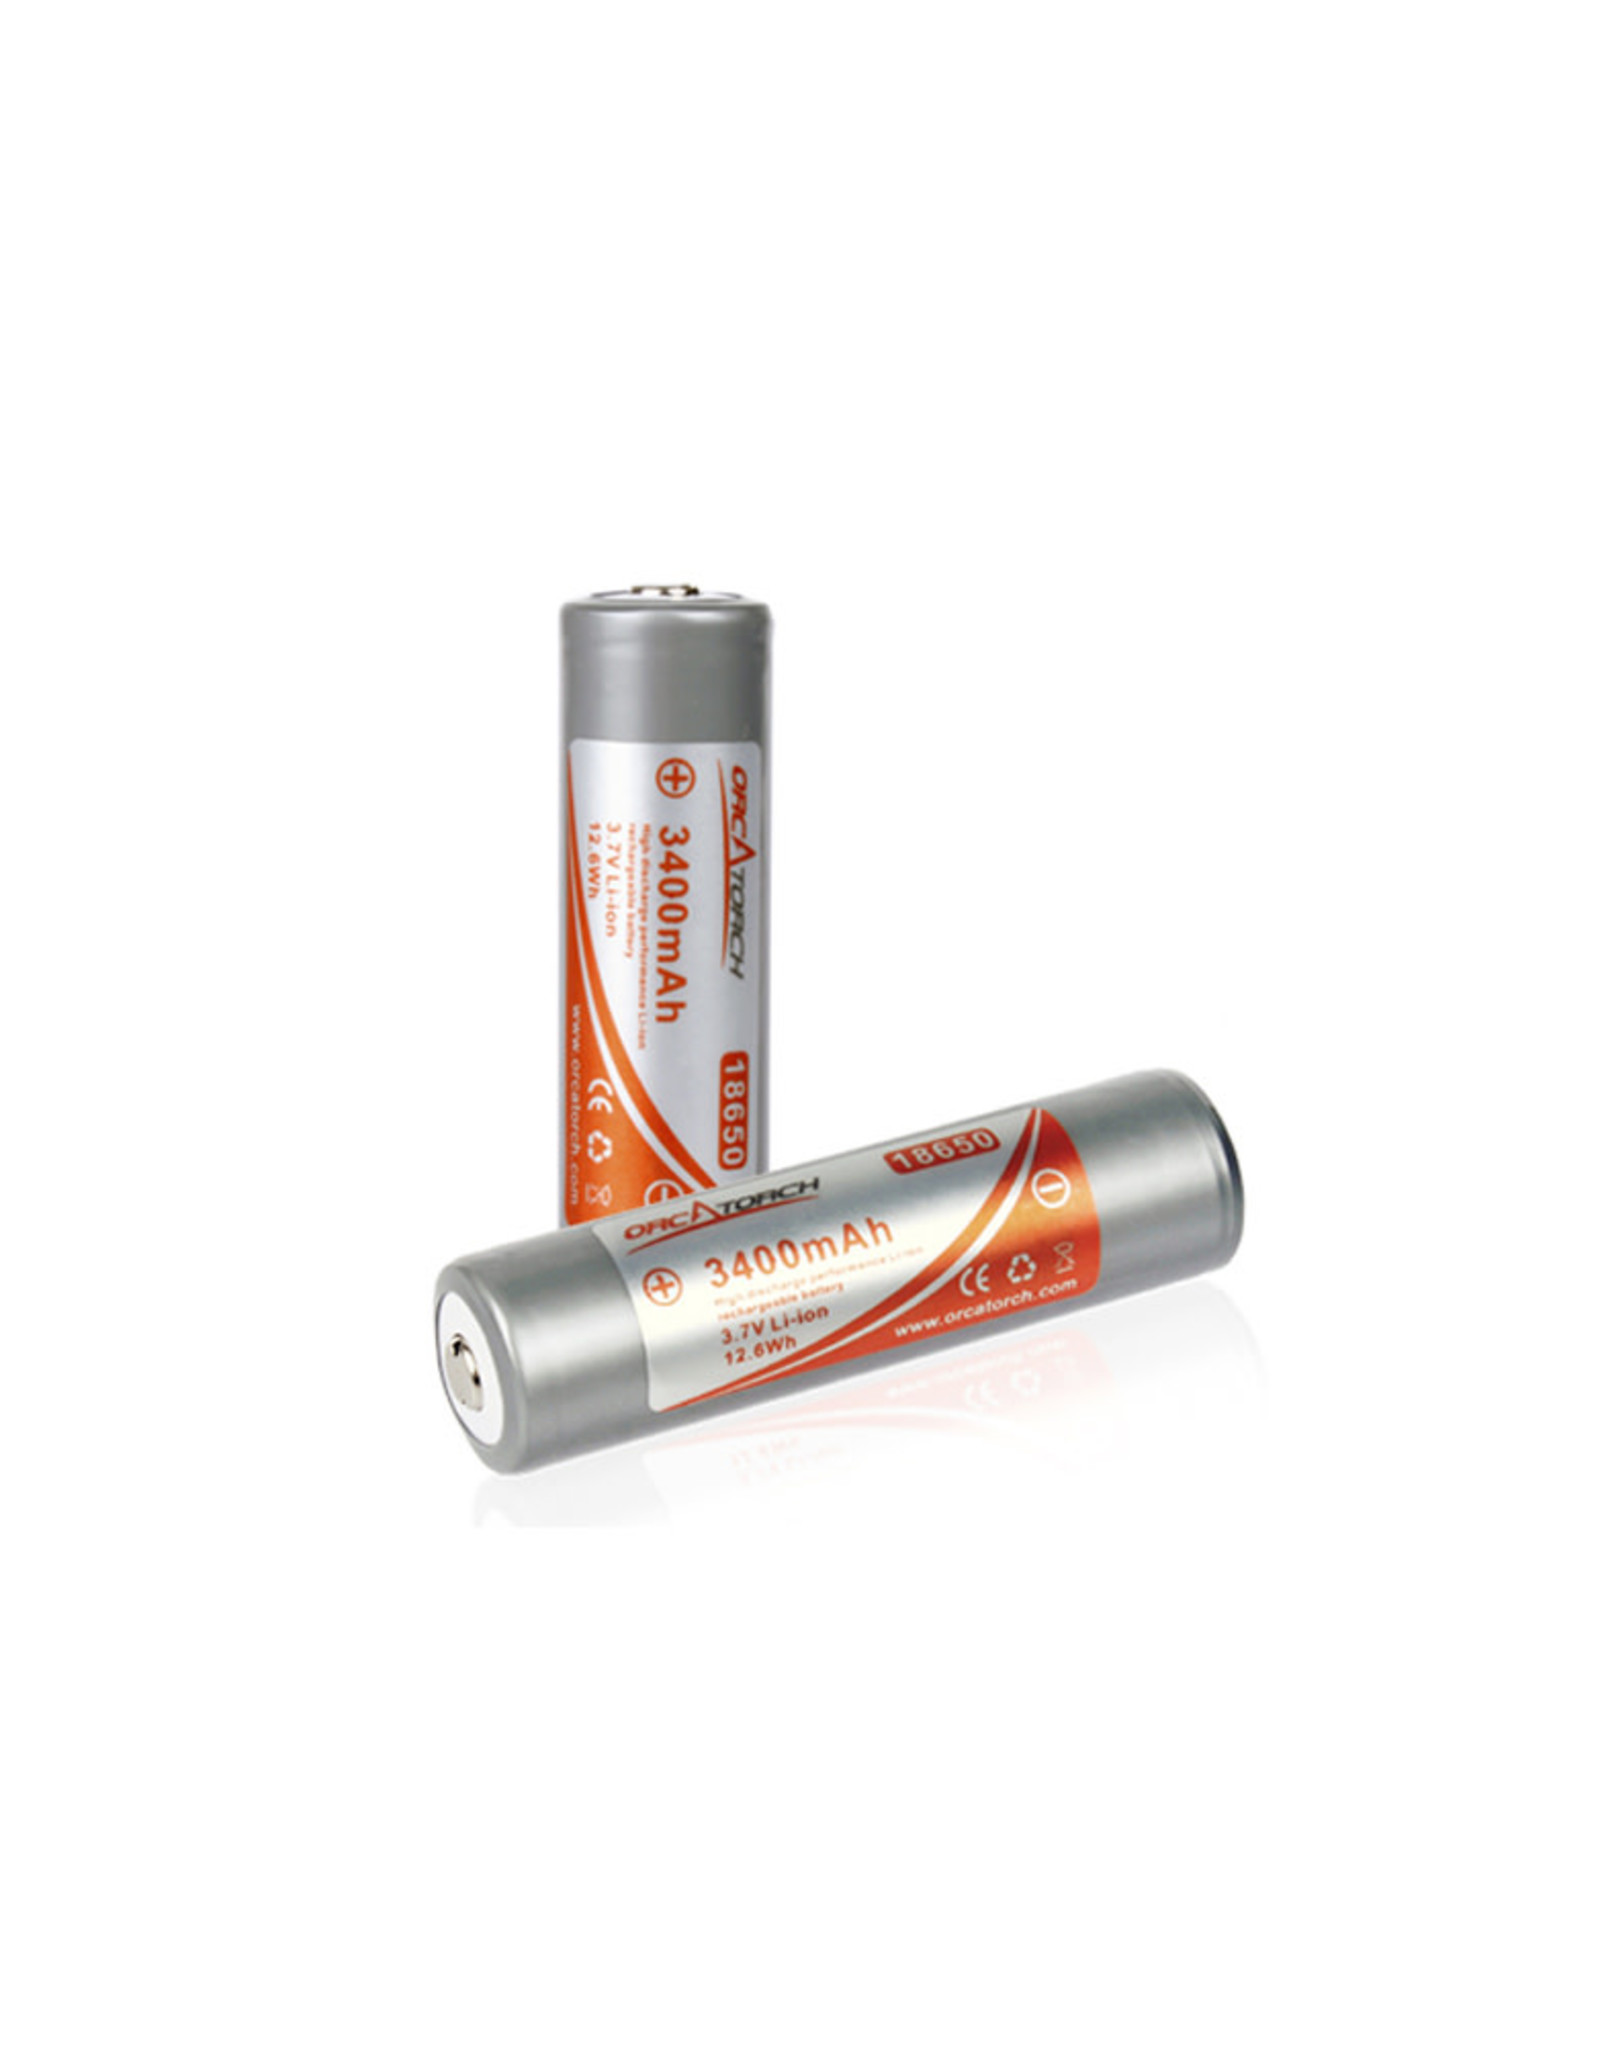 OrcaTorch 18650 Rechargeable Battery